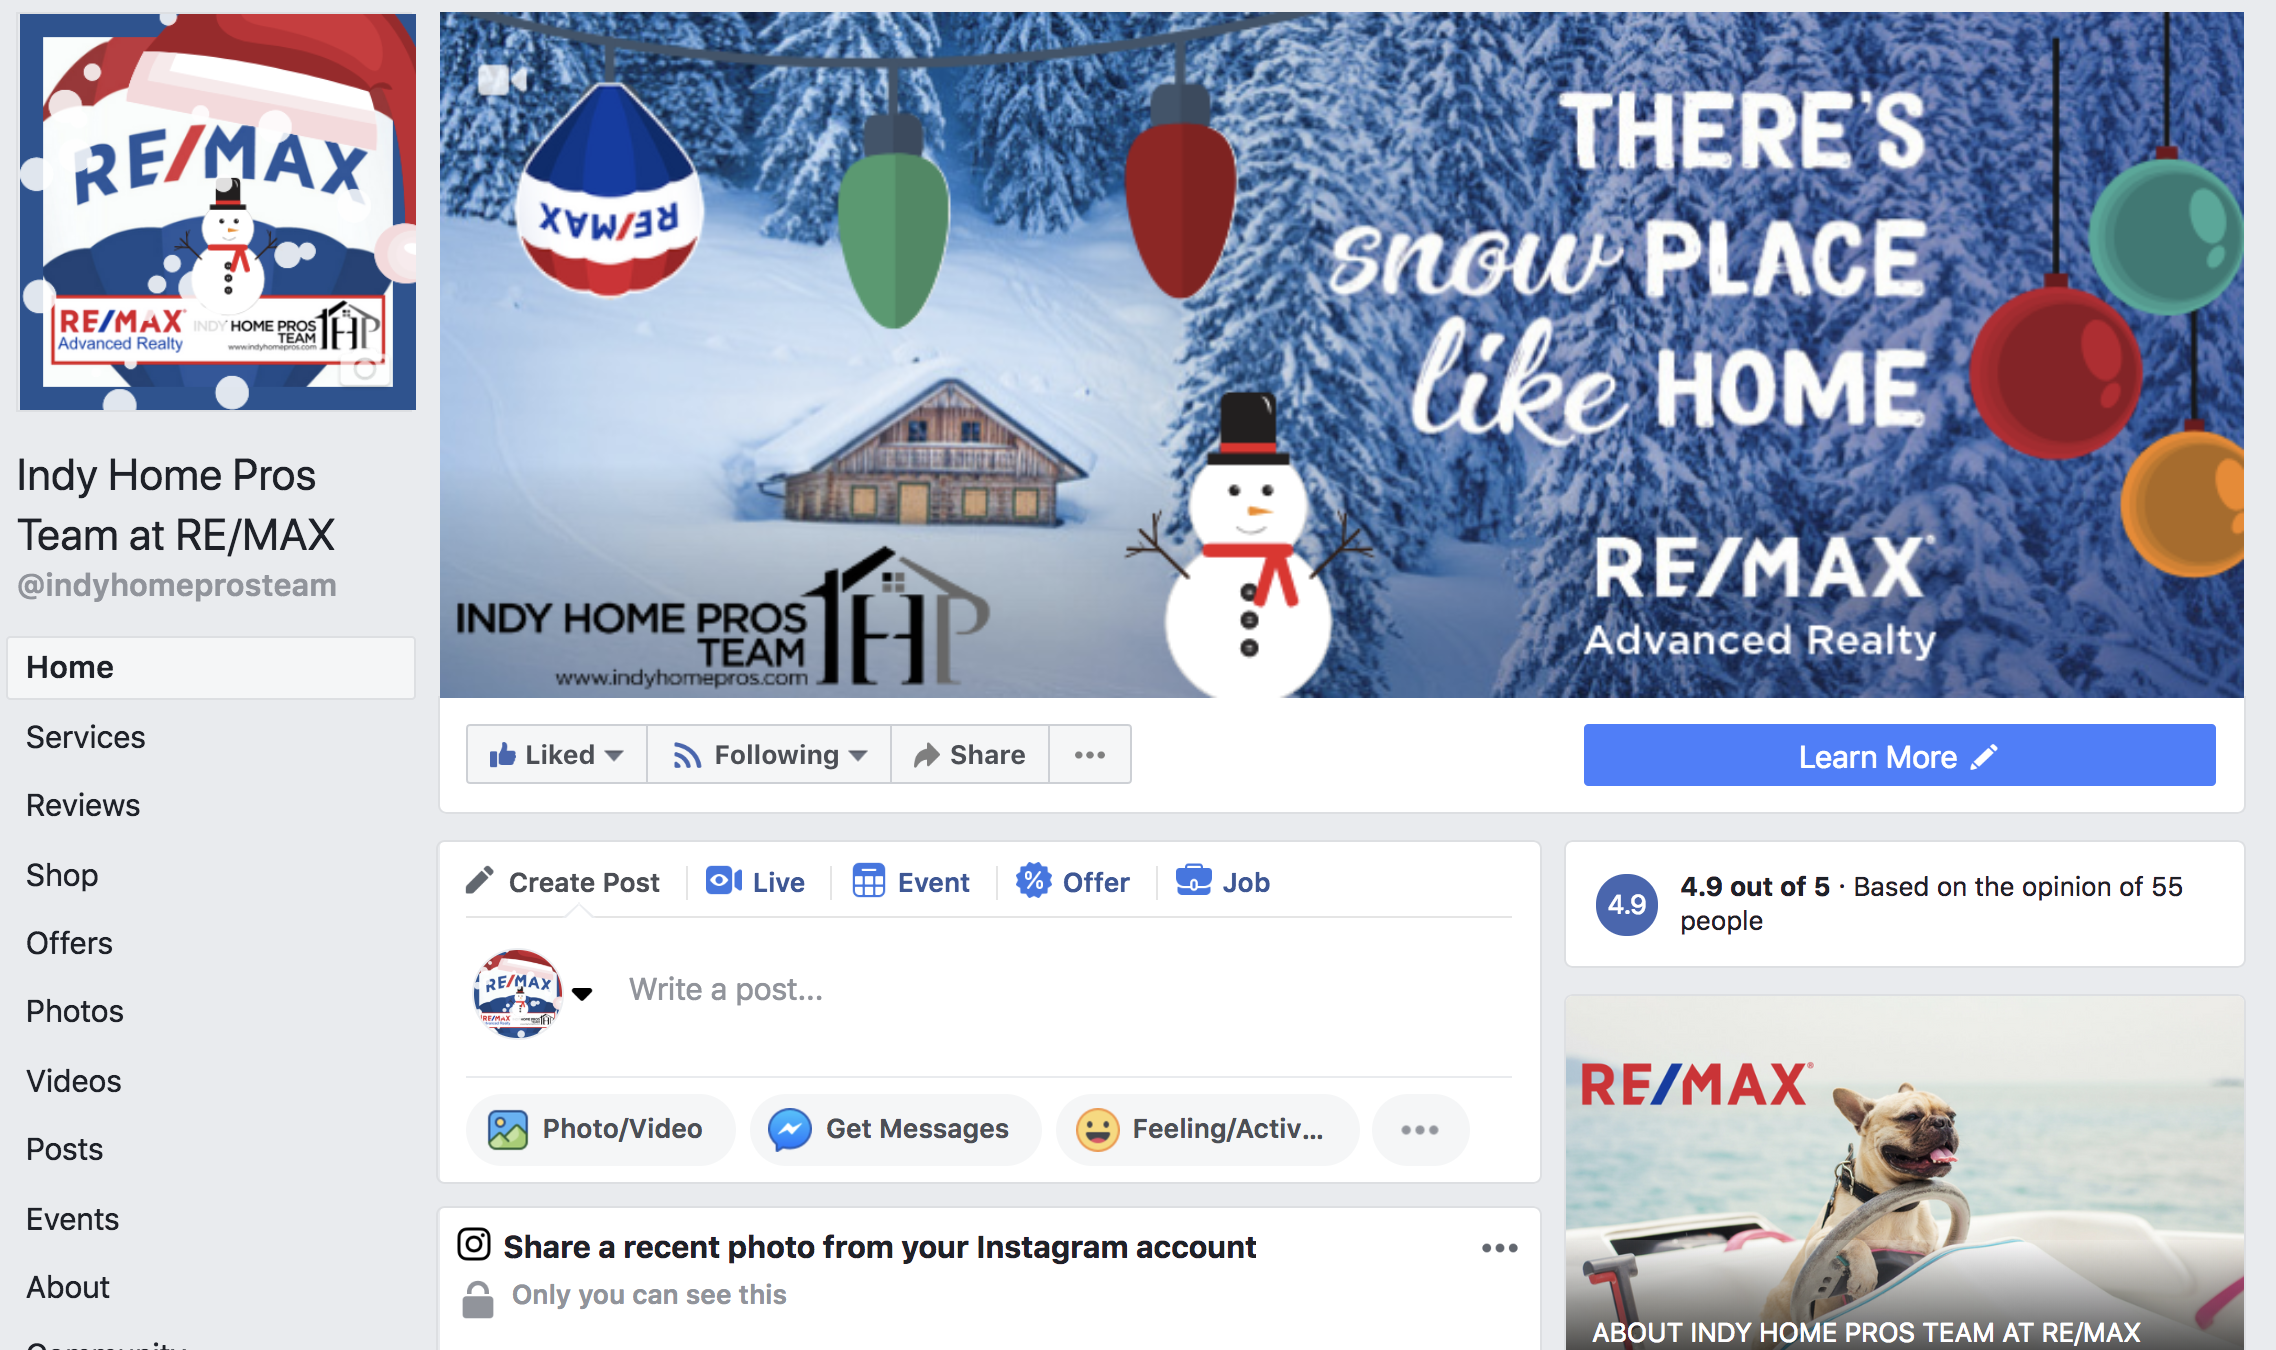 Screenshot of the Indy Home Pros Team Facebook Page